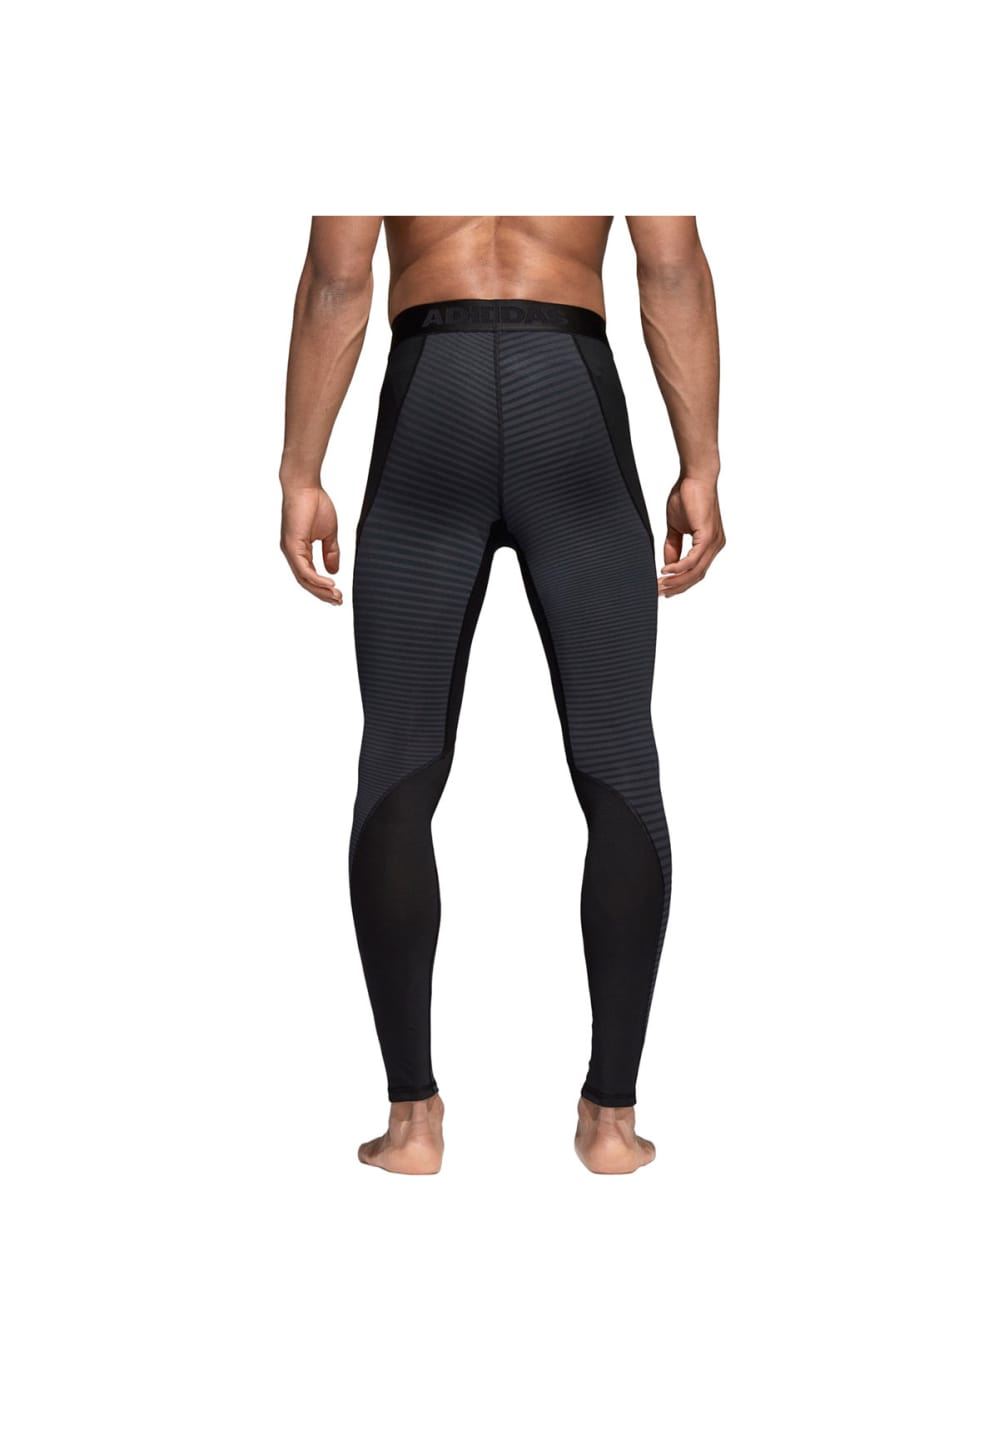 adidas Alphaskin Sport Climawarm Tights Running trousers for Men Black